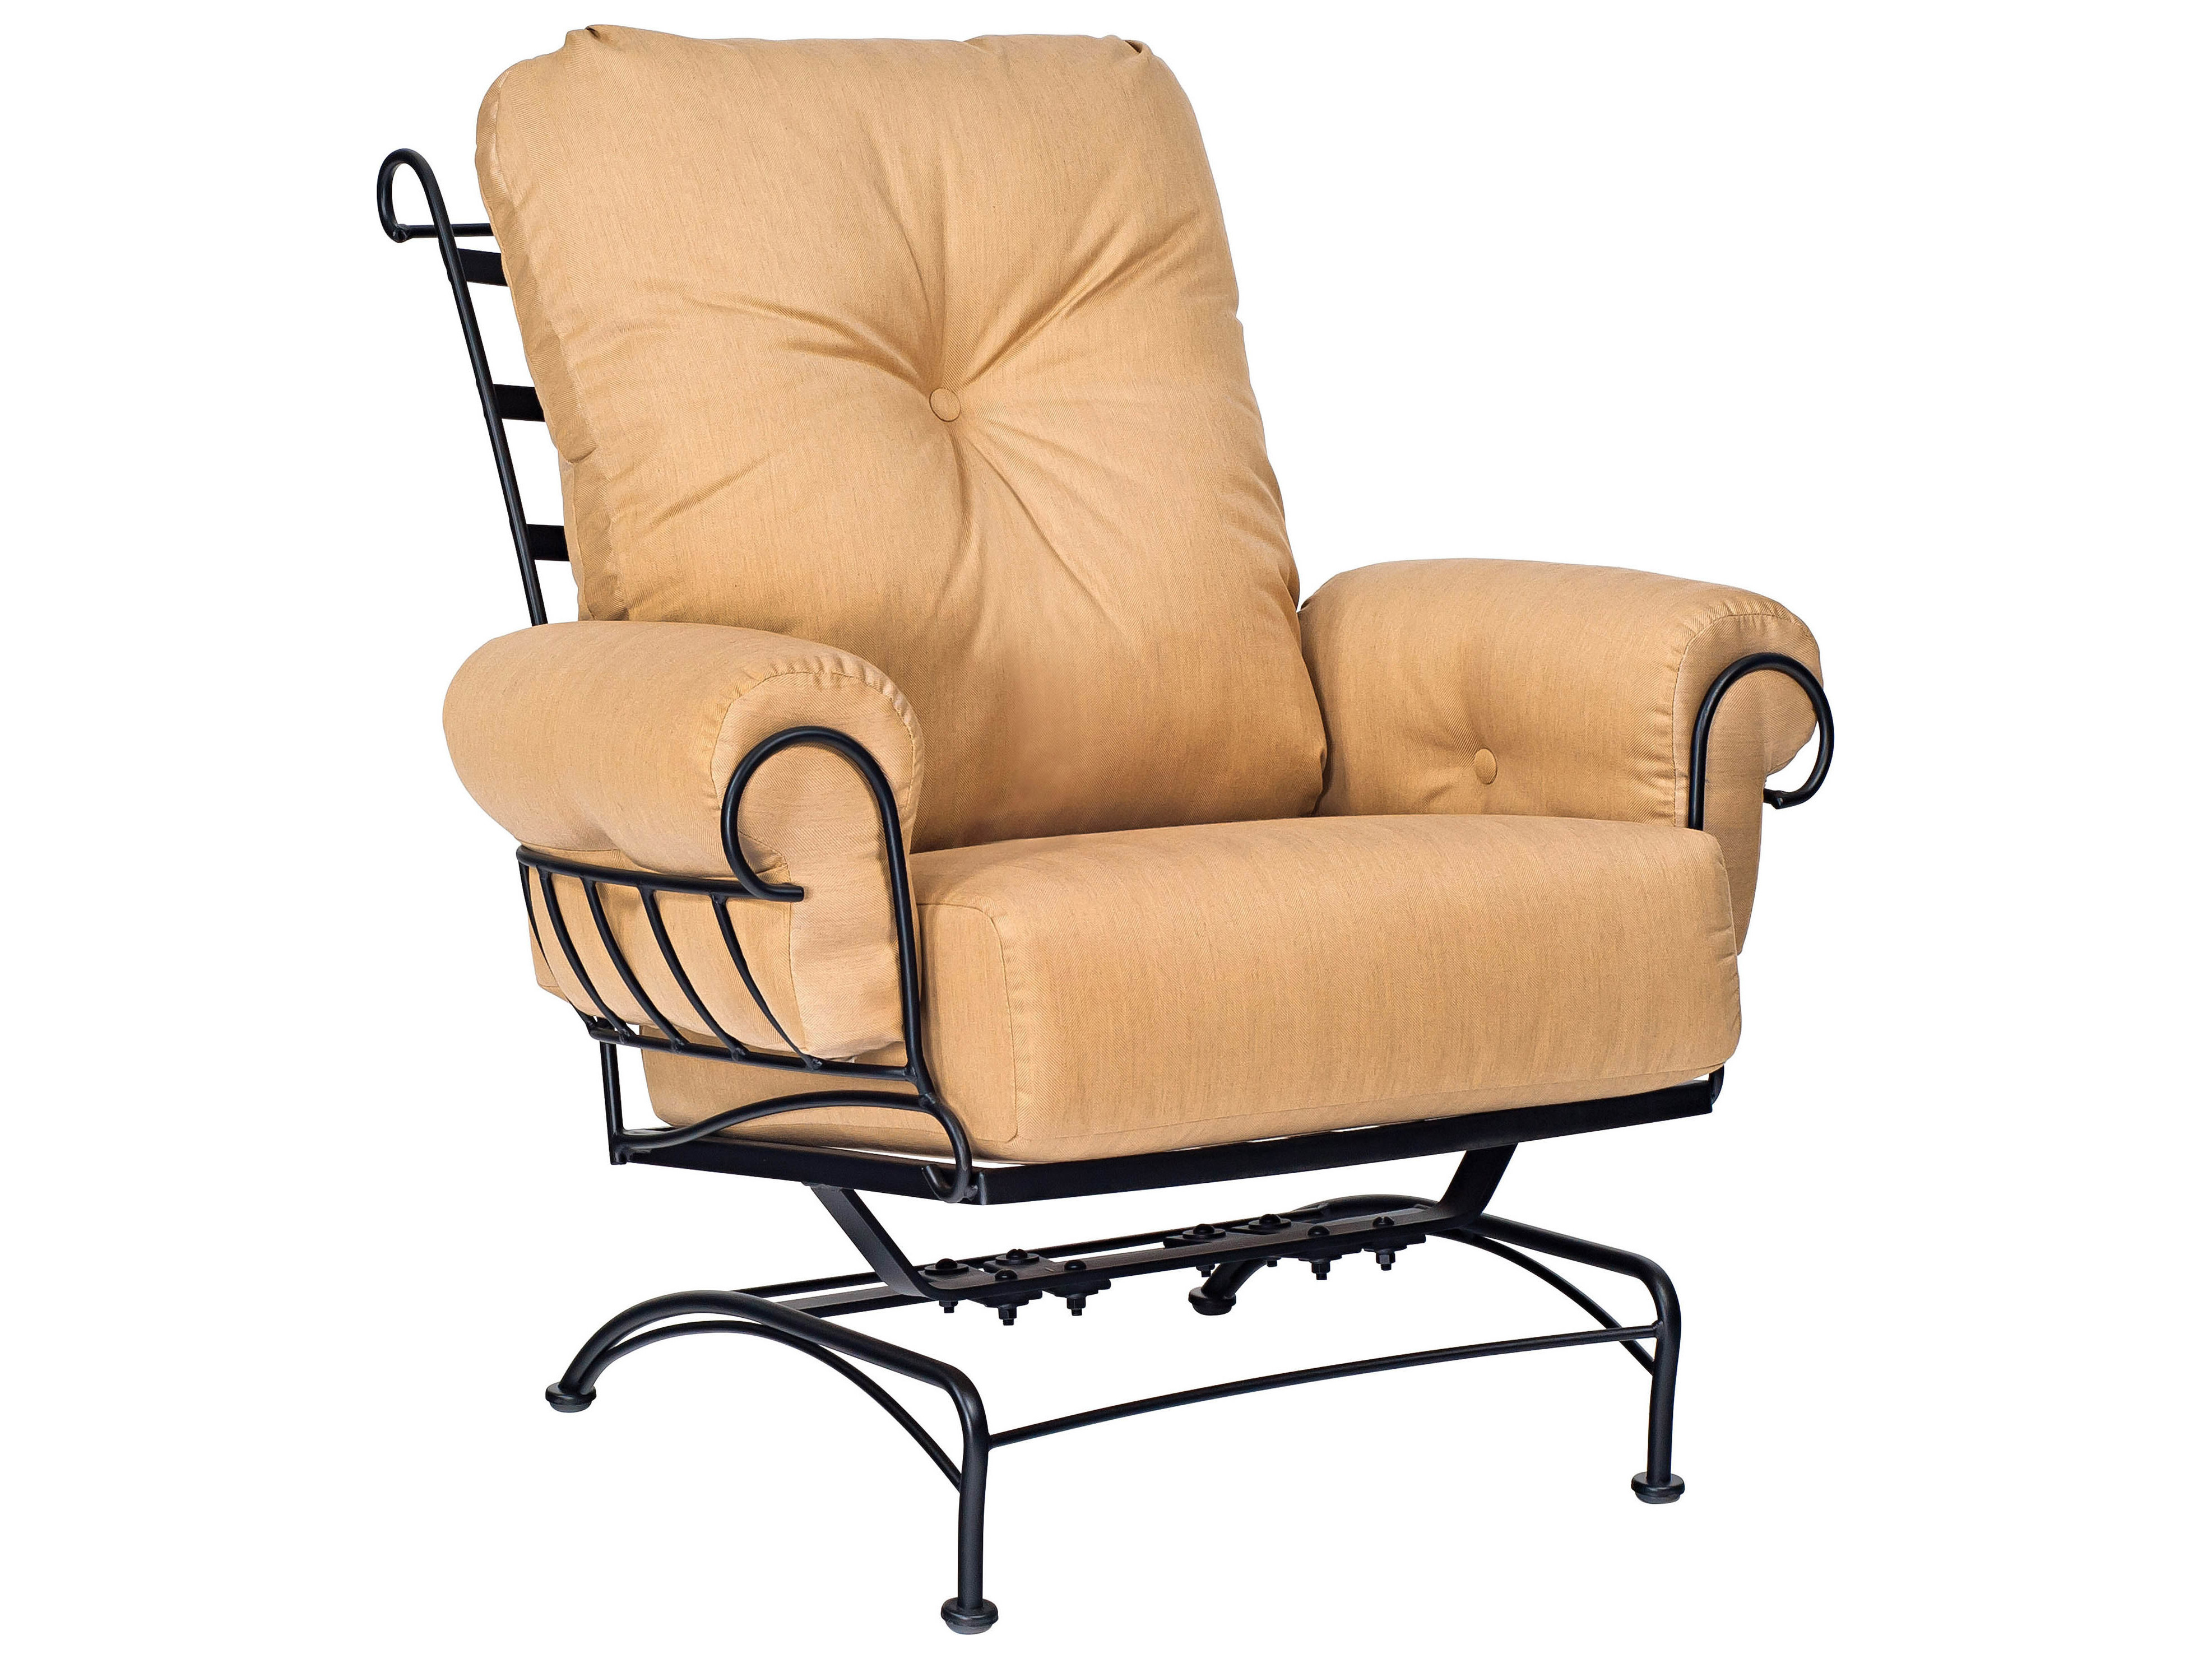 Woodard Terrace Lounge Chair Replacement Cushions